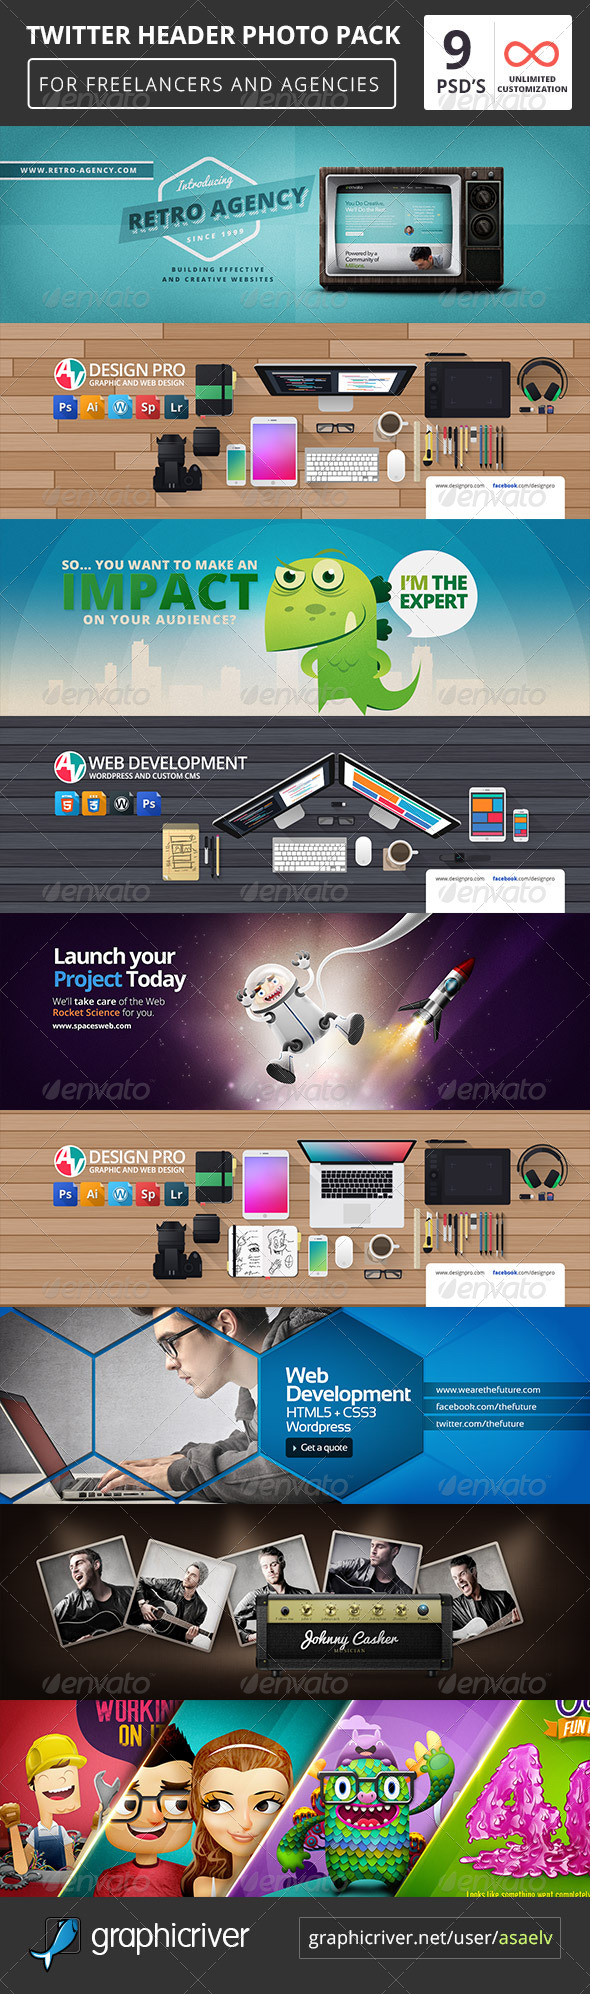 GraphicRiver 9 Twitter Header Covers Pack 7589581